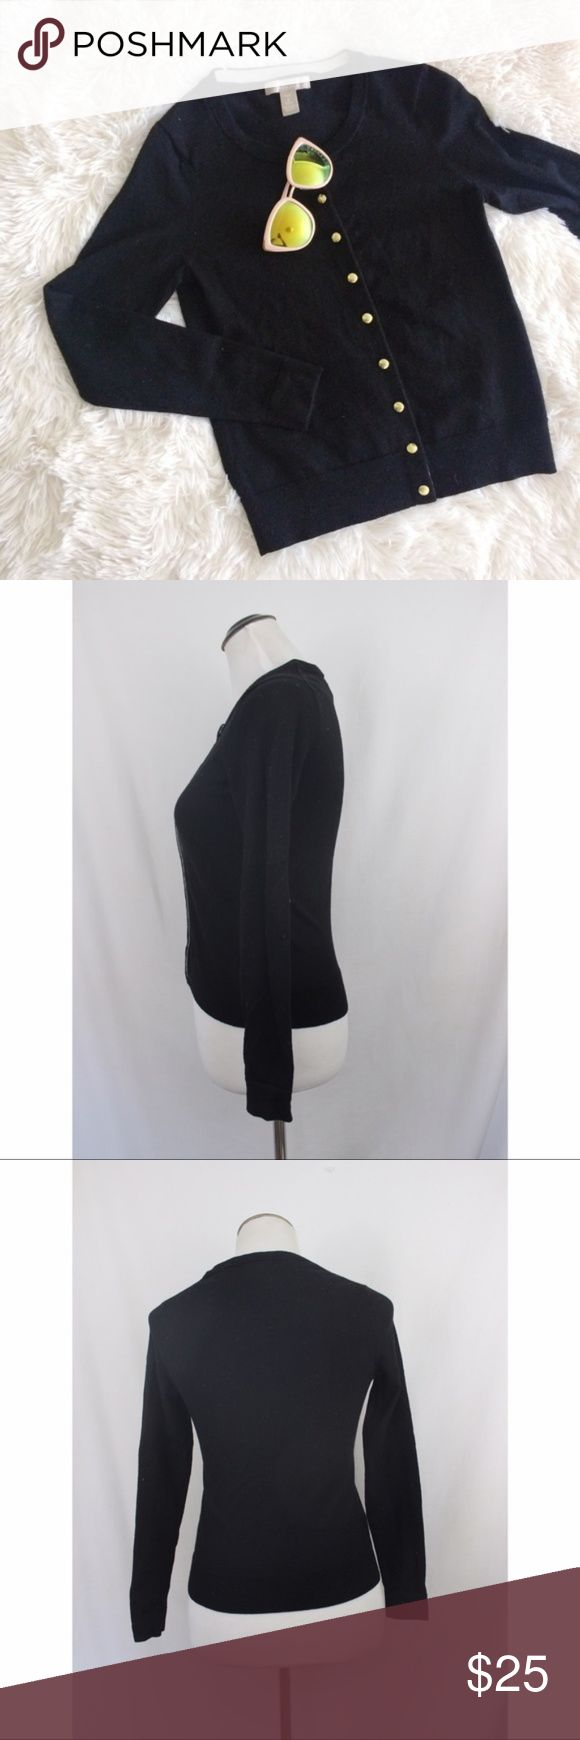 BANANA REPUBLIC black merino wool petite cardigan Brand: Banana Republic Size: SP Condition: excellent condition   Measurements:  Length: 20in Bust: 15in   *petite size *gold buttons *62% merino extra fine wool, 15% nylon, 3% spandex Banana Republic Sweaters Cardigans